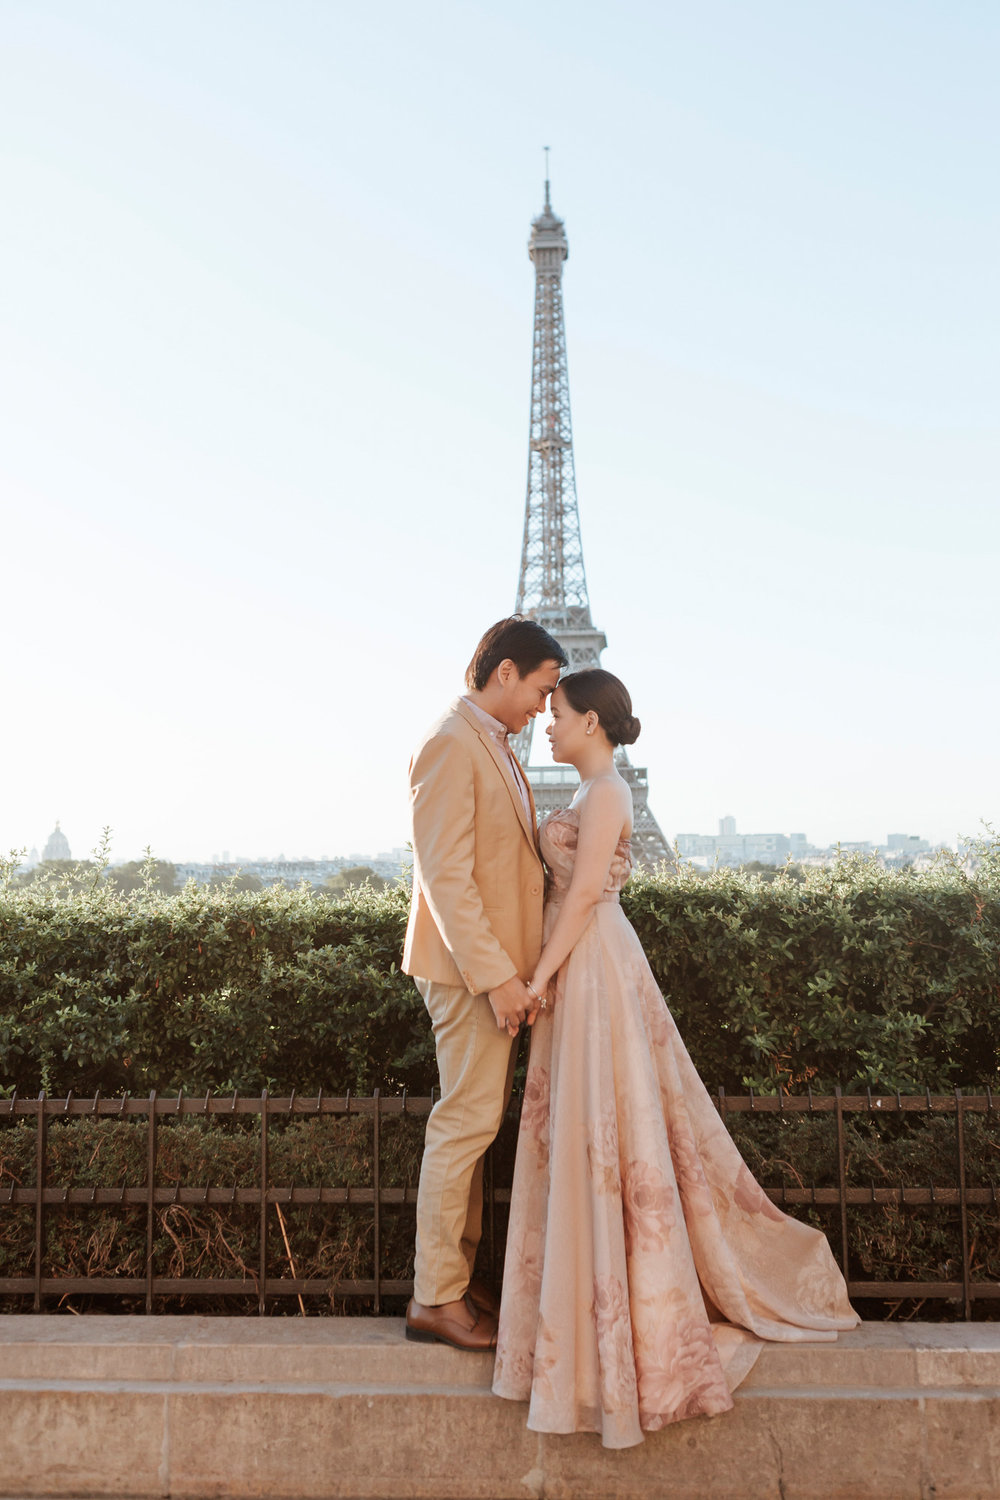 Pre-wedding couple portrait session at the Eiffel Tower in sunrise captured by Photographer in Paris Federico Guendel